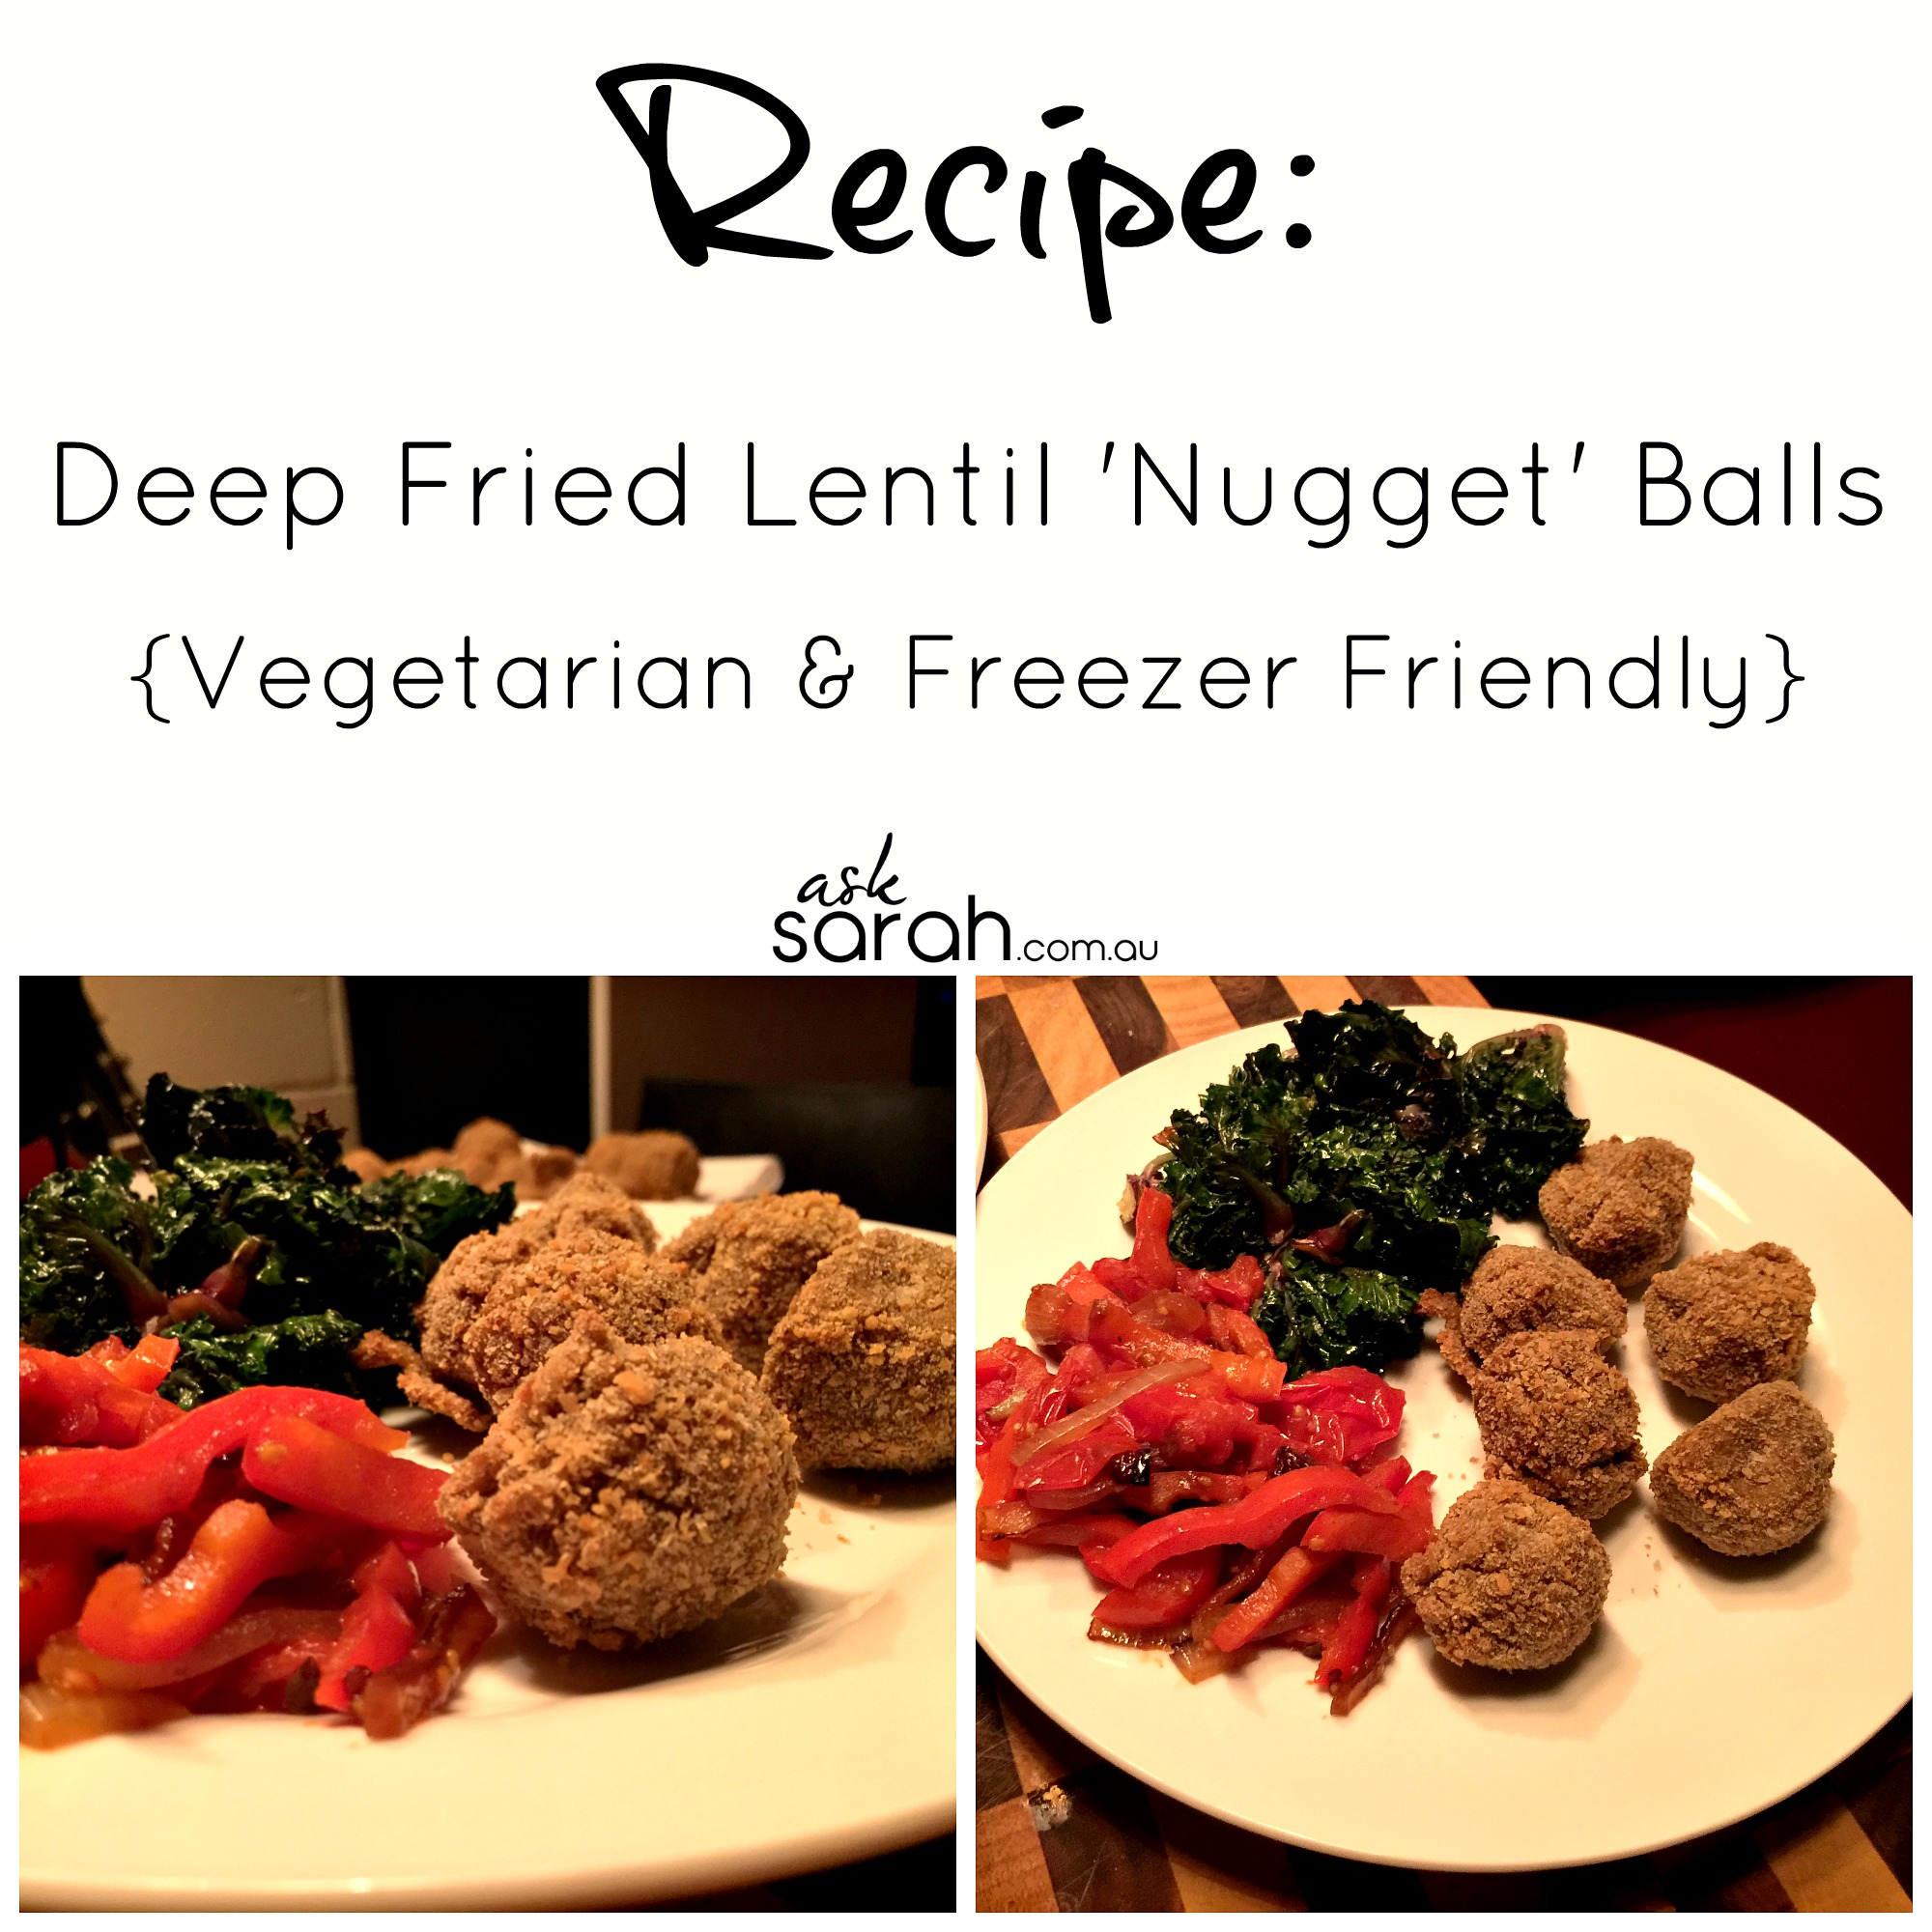 Recipe: Deep Fried Lentil Nugget Balls {Vegetarian & Freezer Friendly}